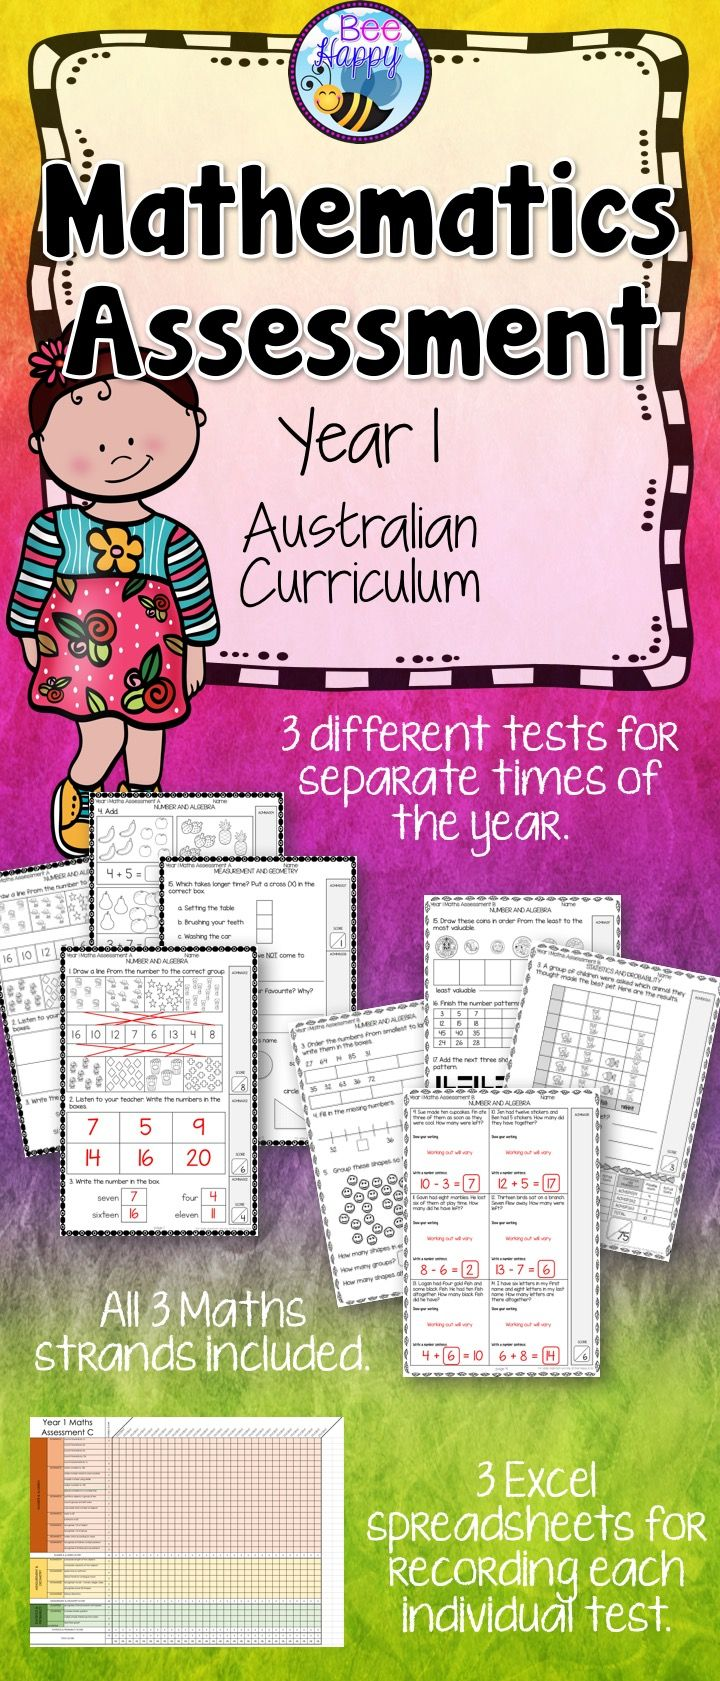 These Maths tests, for year one students, are linked to the Australian Curriculum. They cover Number & Algebra, Measurement & Geometry and Statistics & Probability. This package includes three assessments that will help to provide data that can be used to inform judgements of student achievement at different times of the school year.